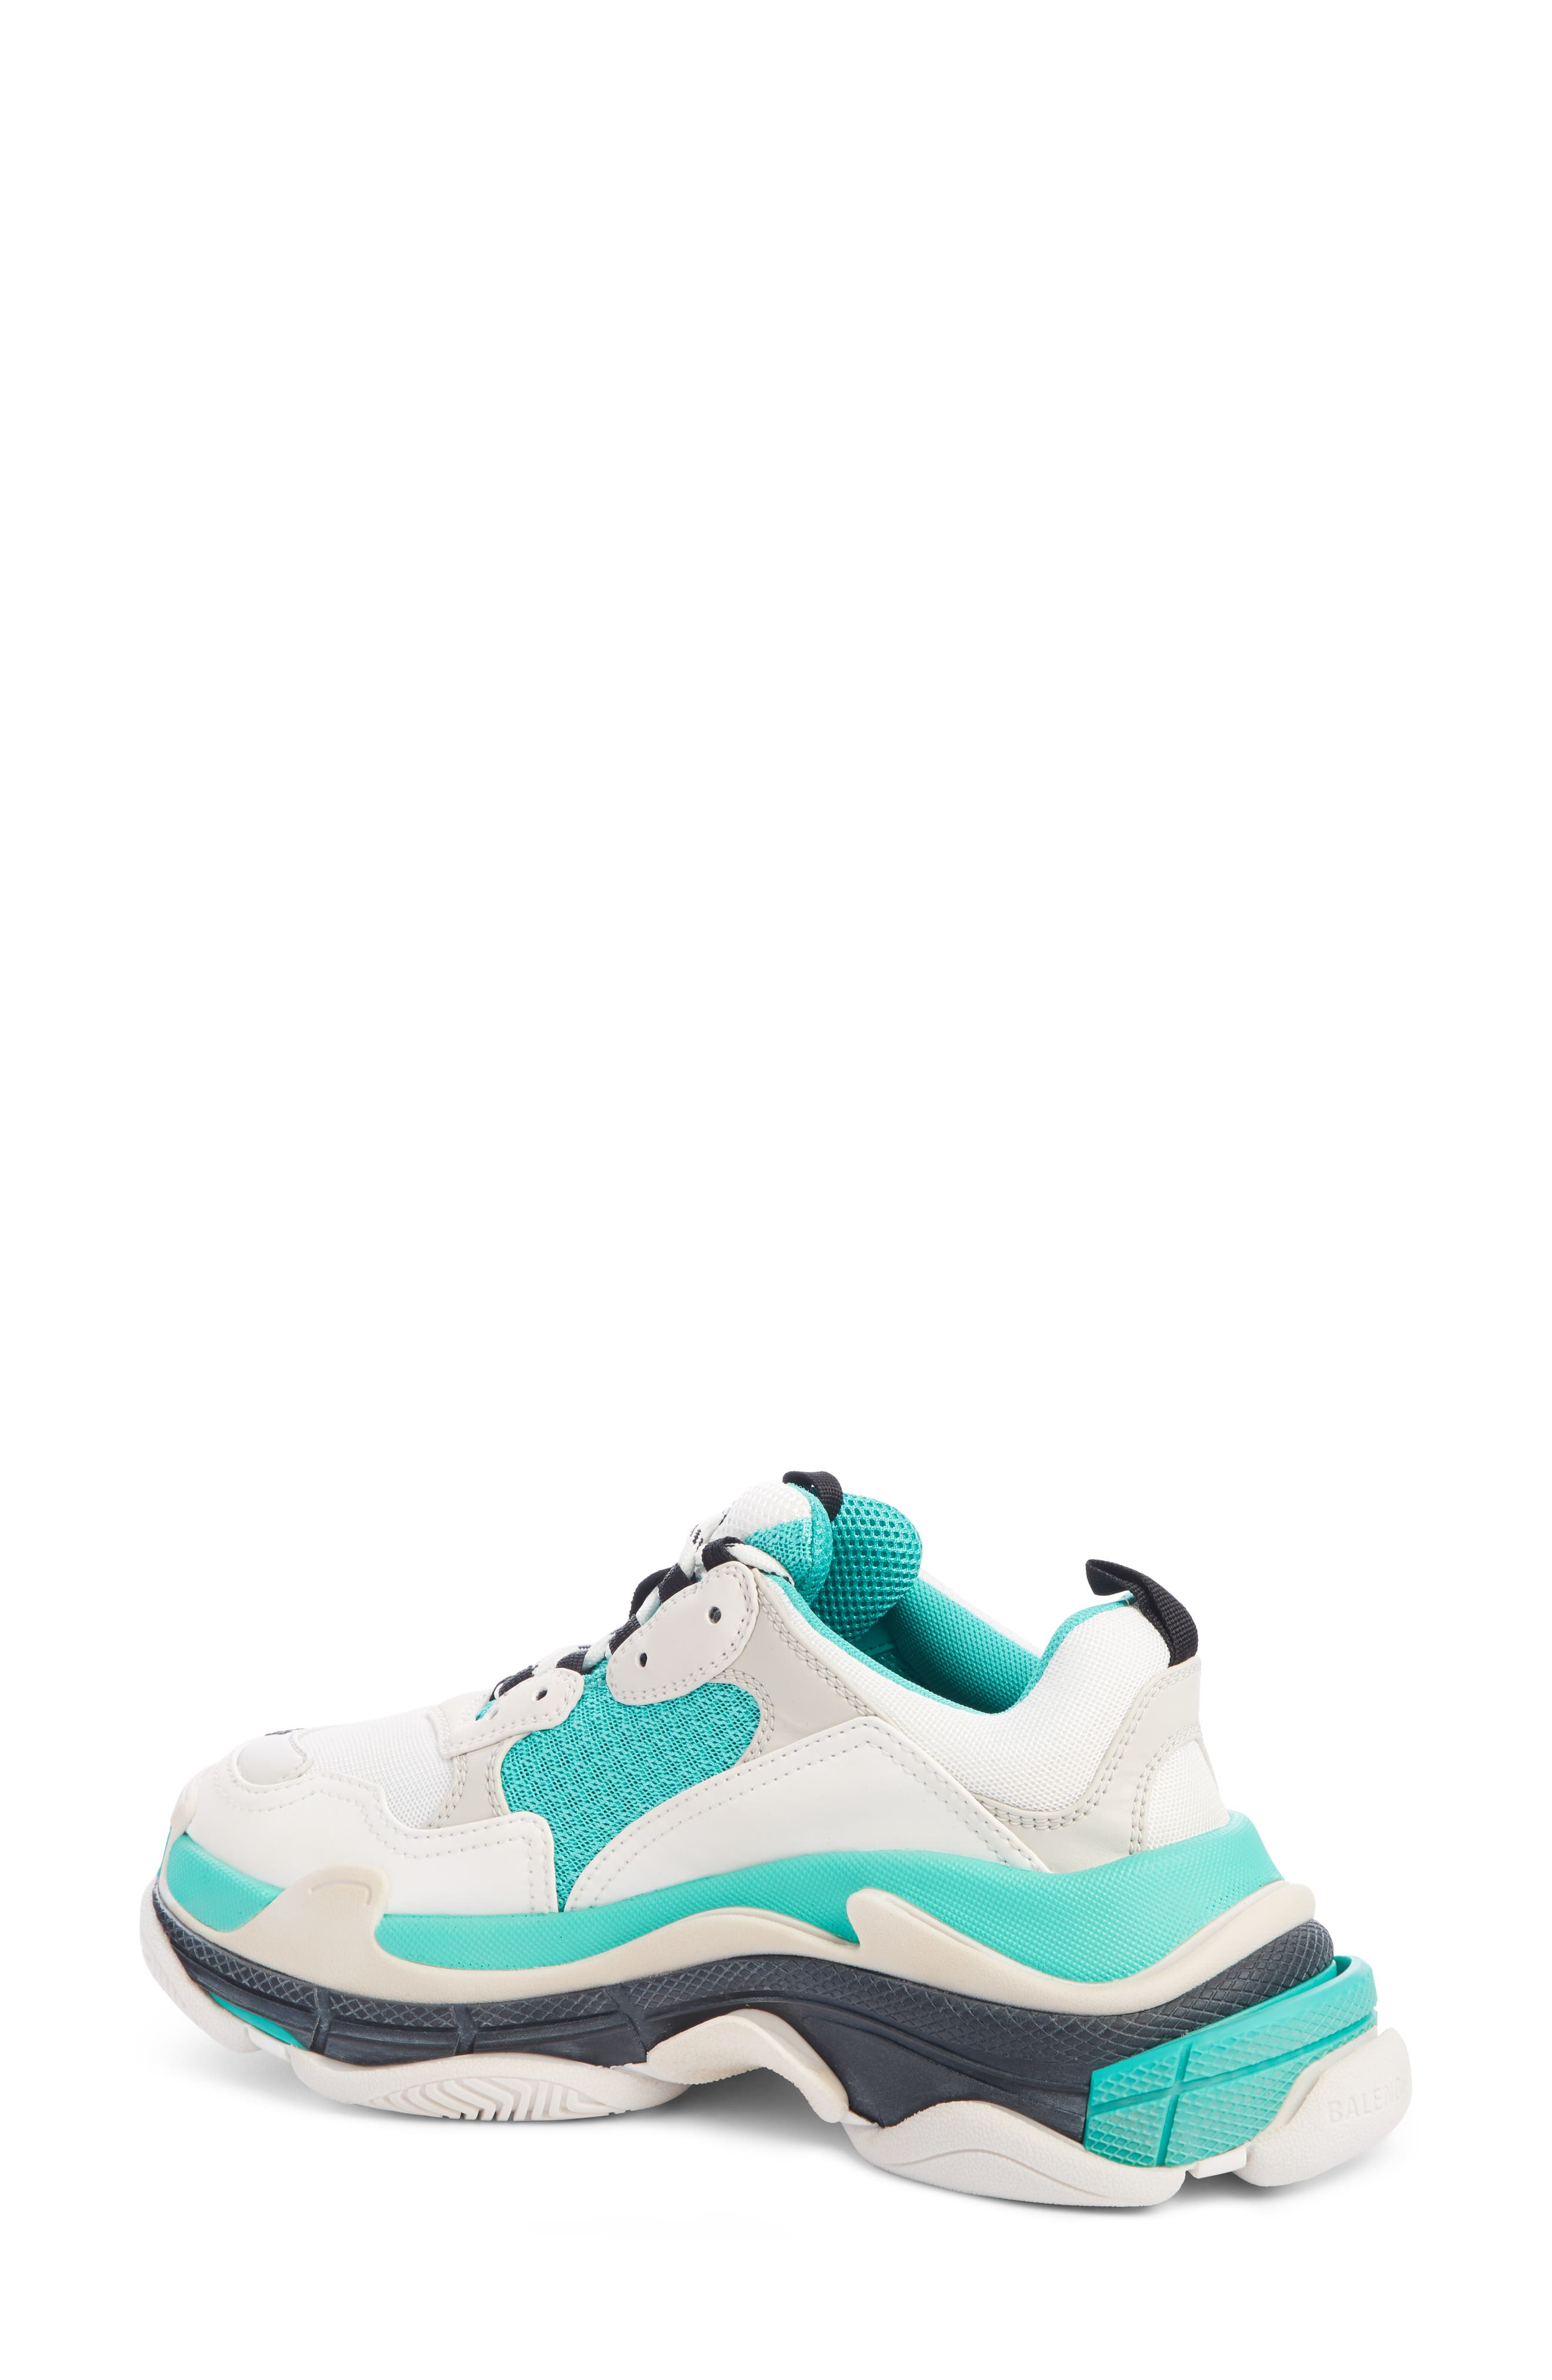 9215f0ae833c7 Women's Balenciaga Shoes | Nordstrom